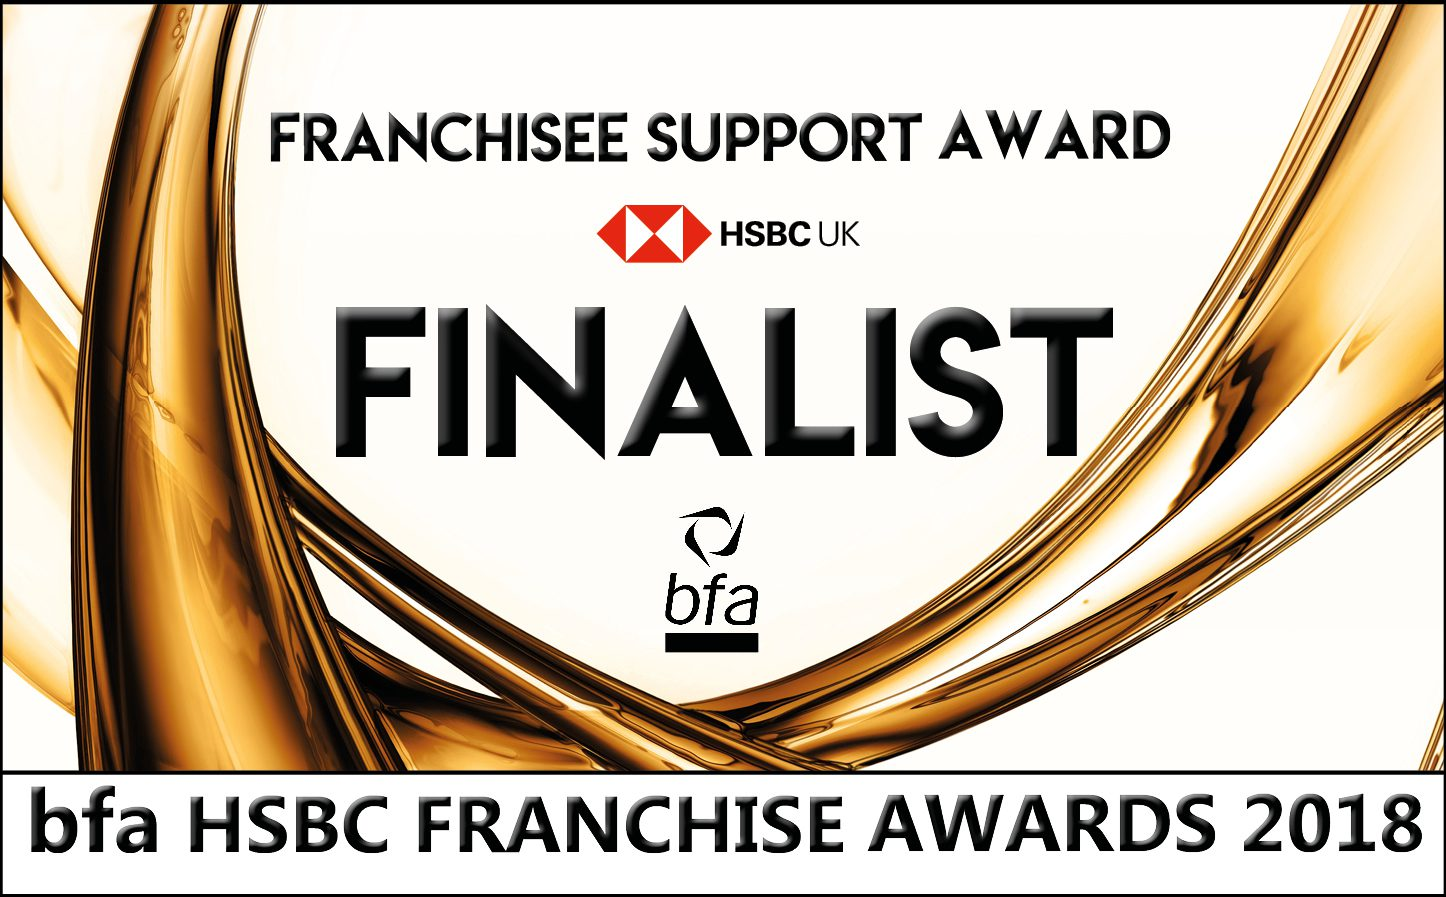 bfa support 18 finalist